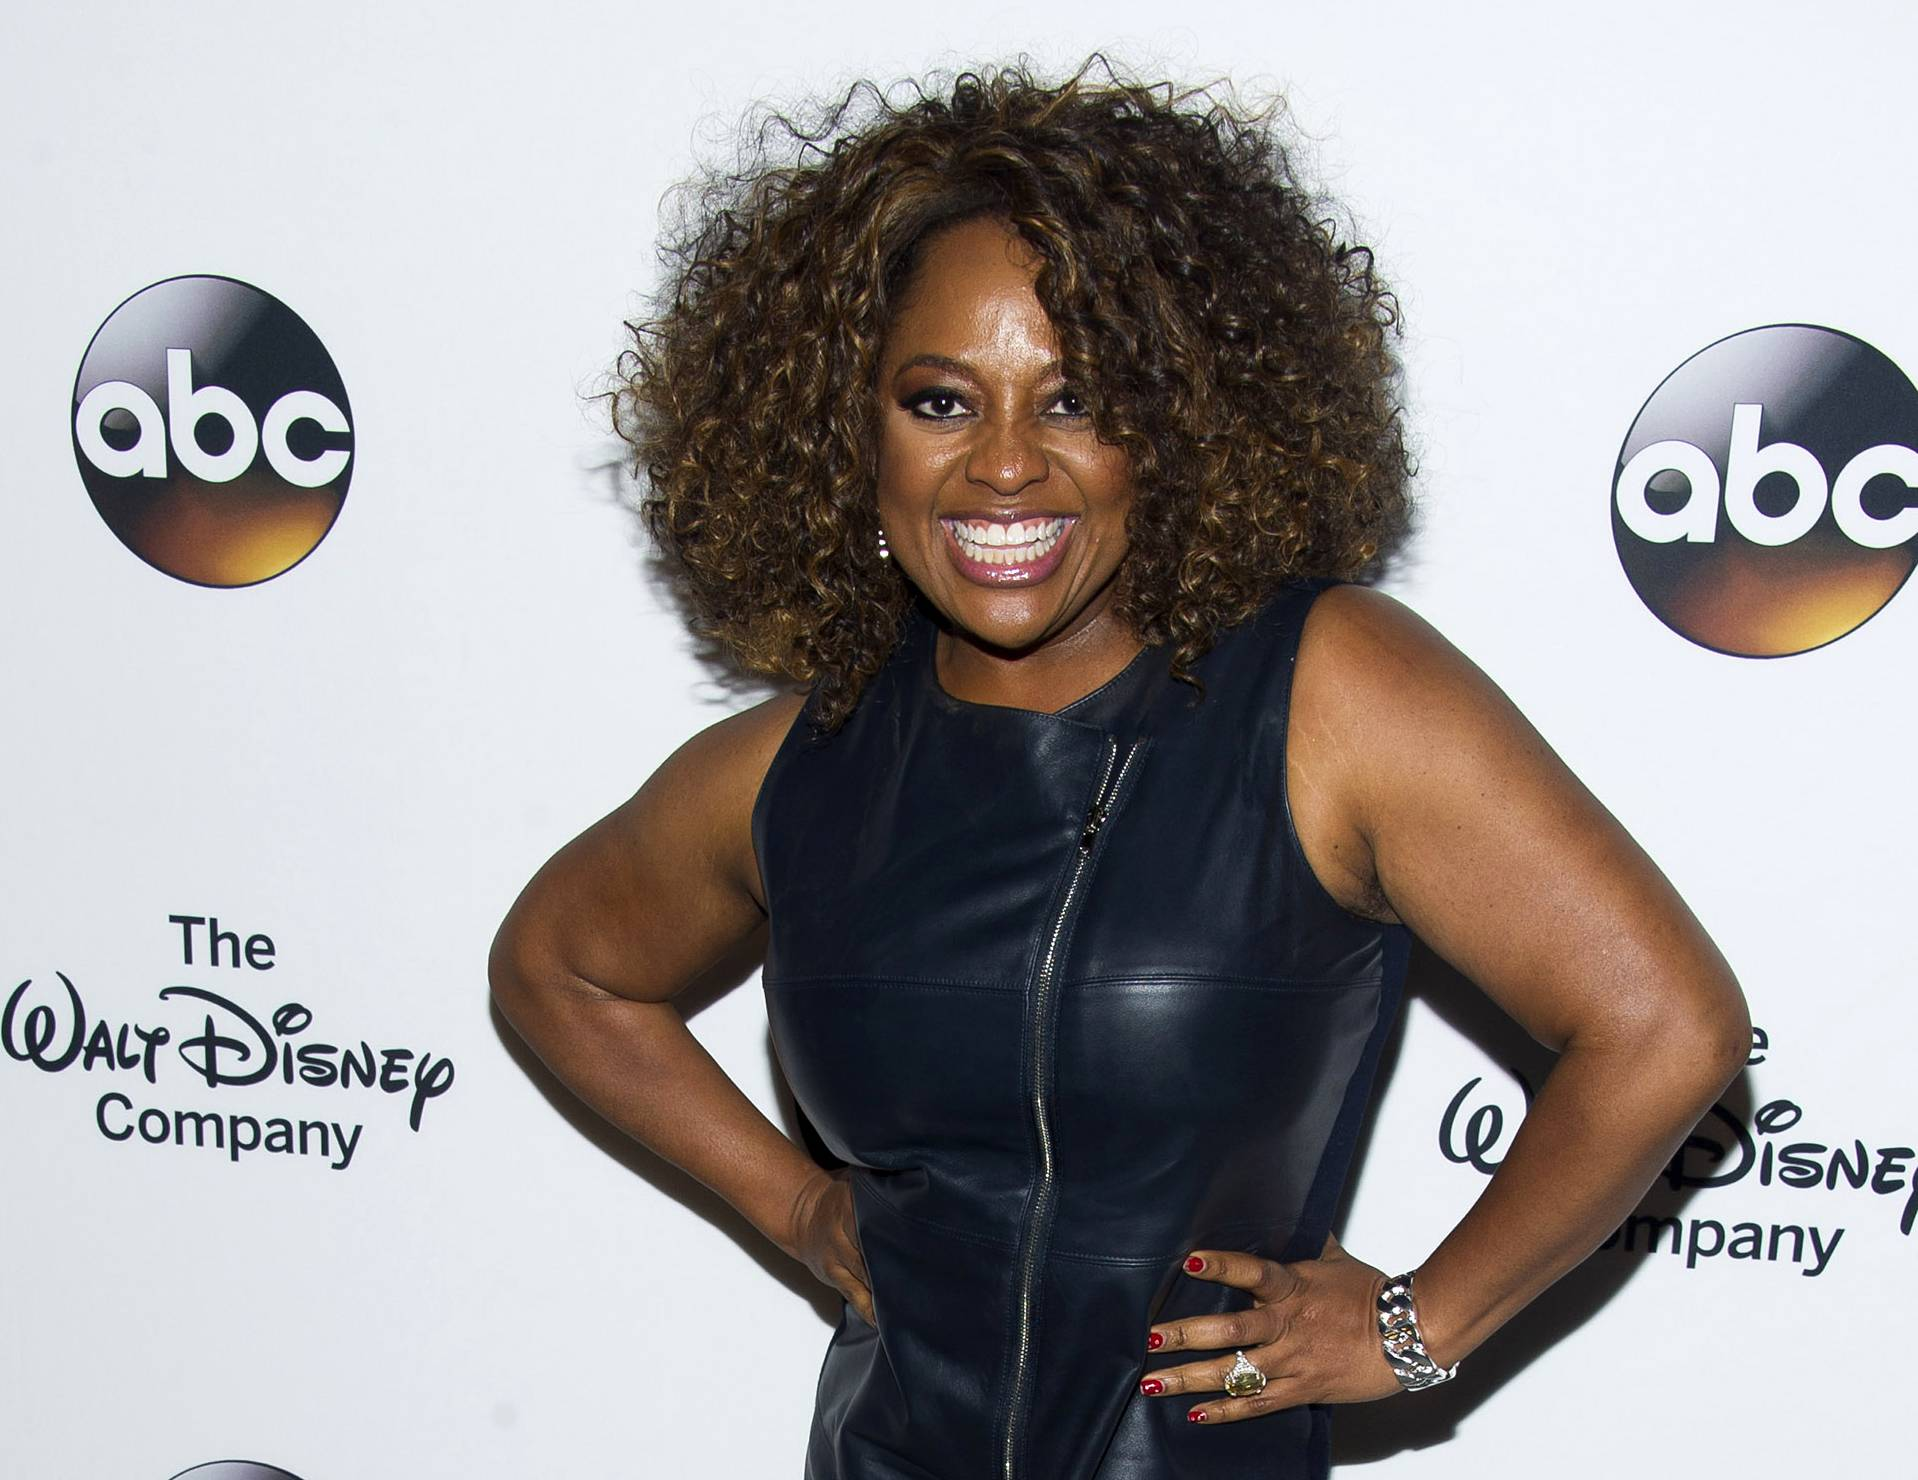 Sherri Shepherd will play the wicked stepmother for Cinderella on Broadway. She will make her Broadway debut in the musical opposite Keke Palmer in the title role on Sept. 9 at the Broadway Theatre.